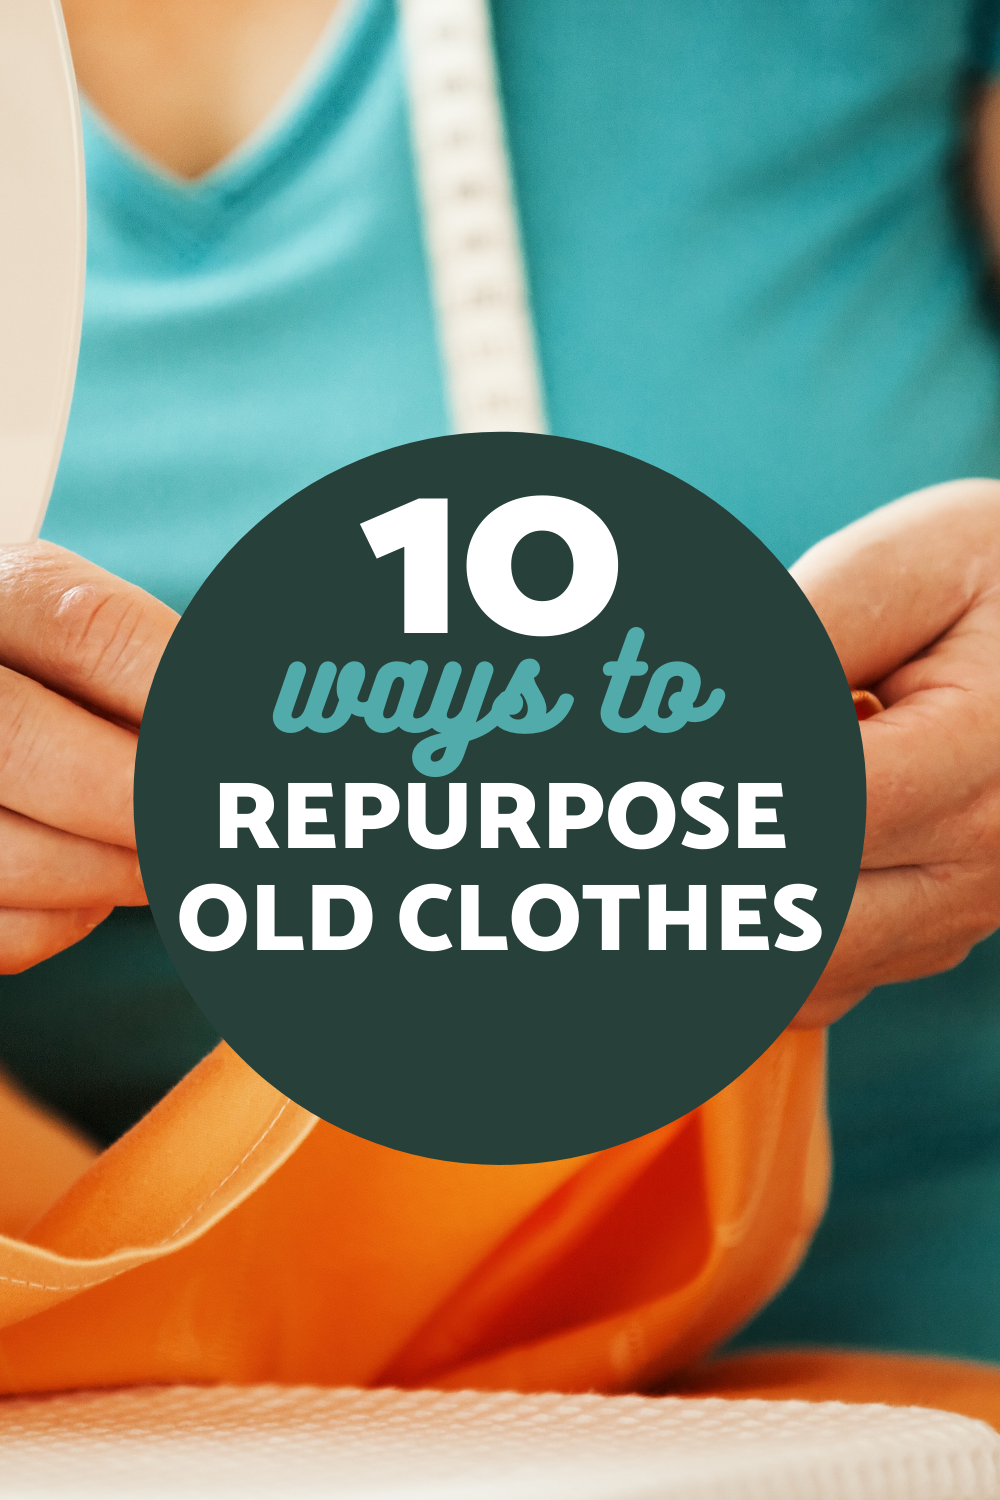 Instead of throwing out that old T-shirt, why not make it into something practical? Use one of these 10 idea sto repurpose old clothes.